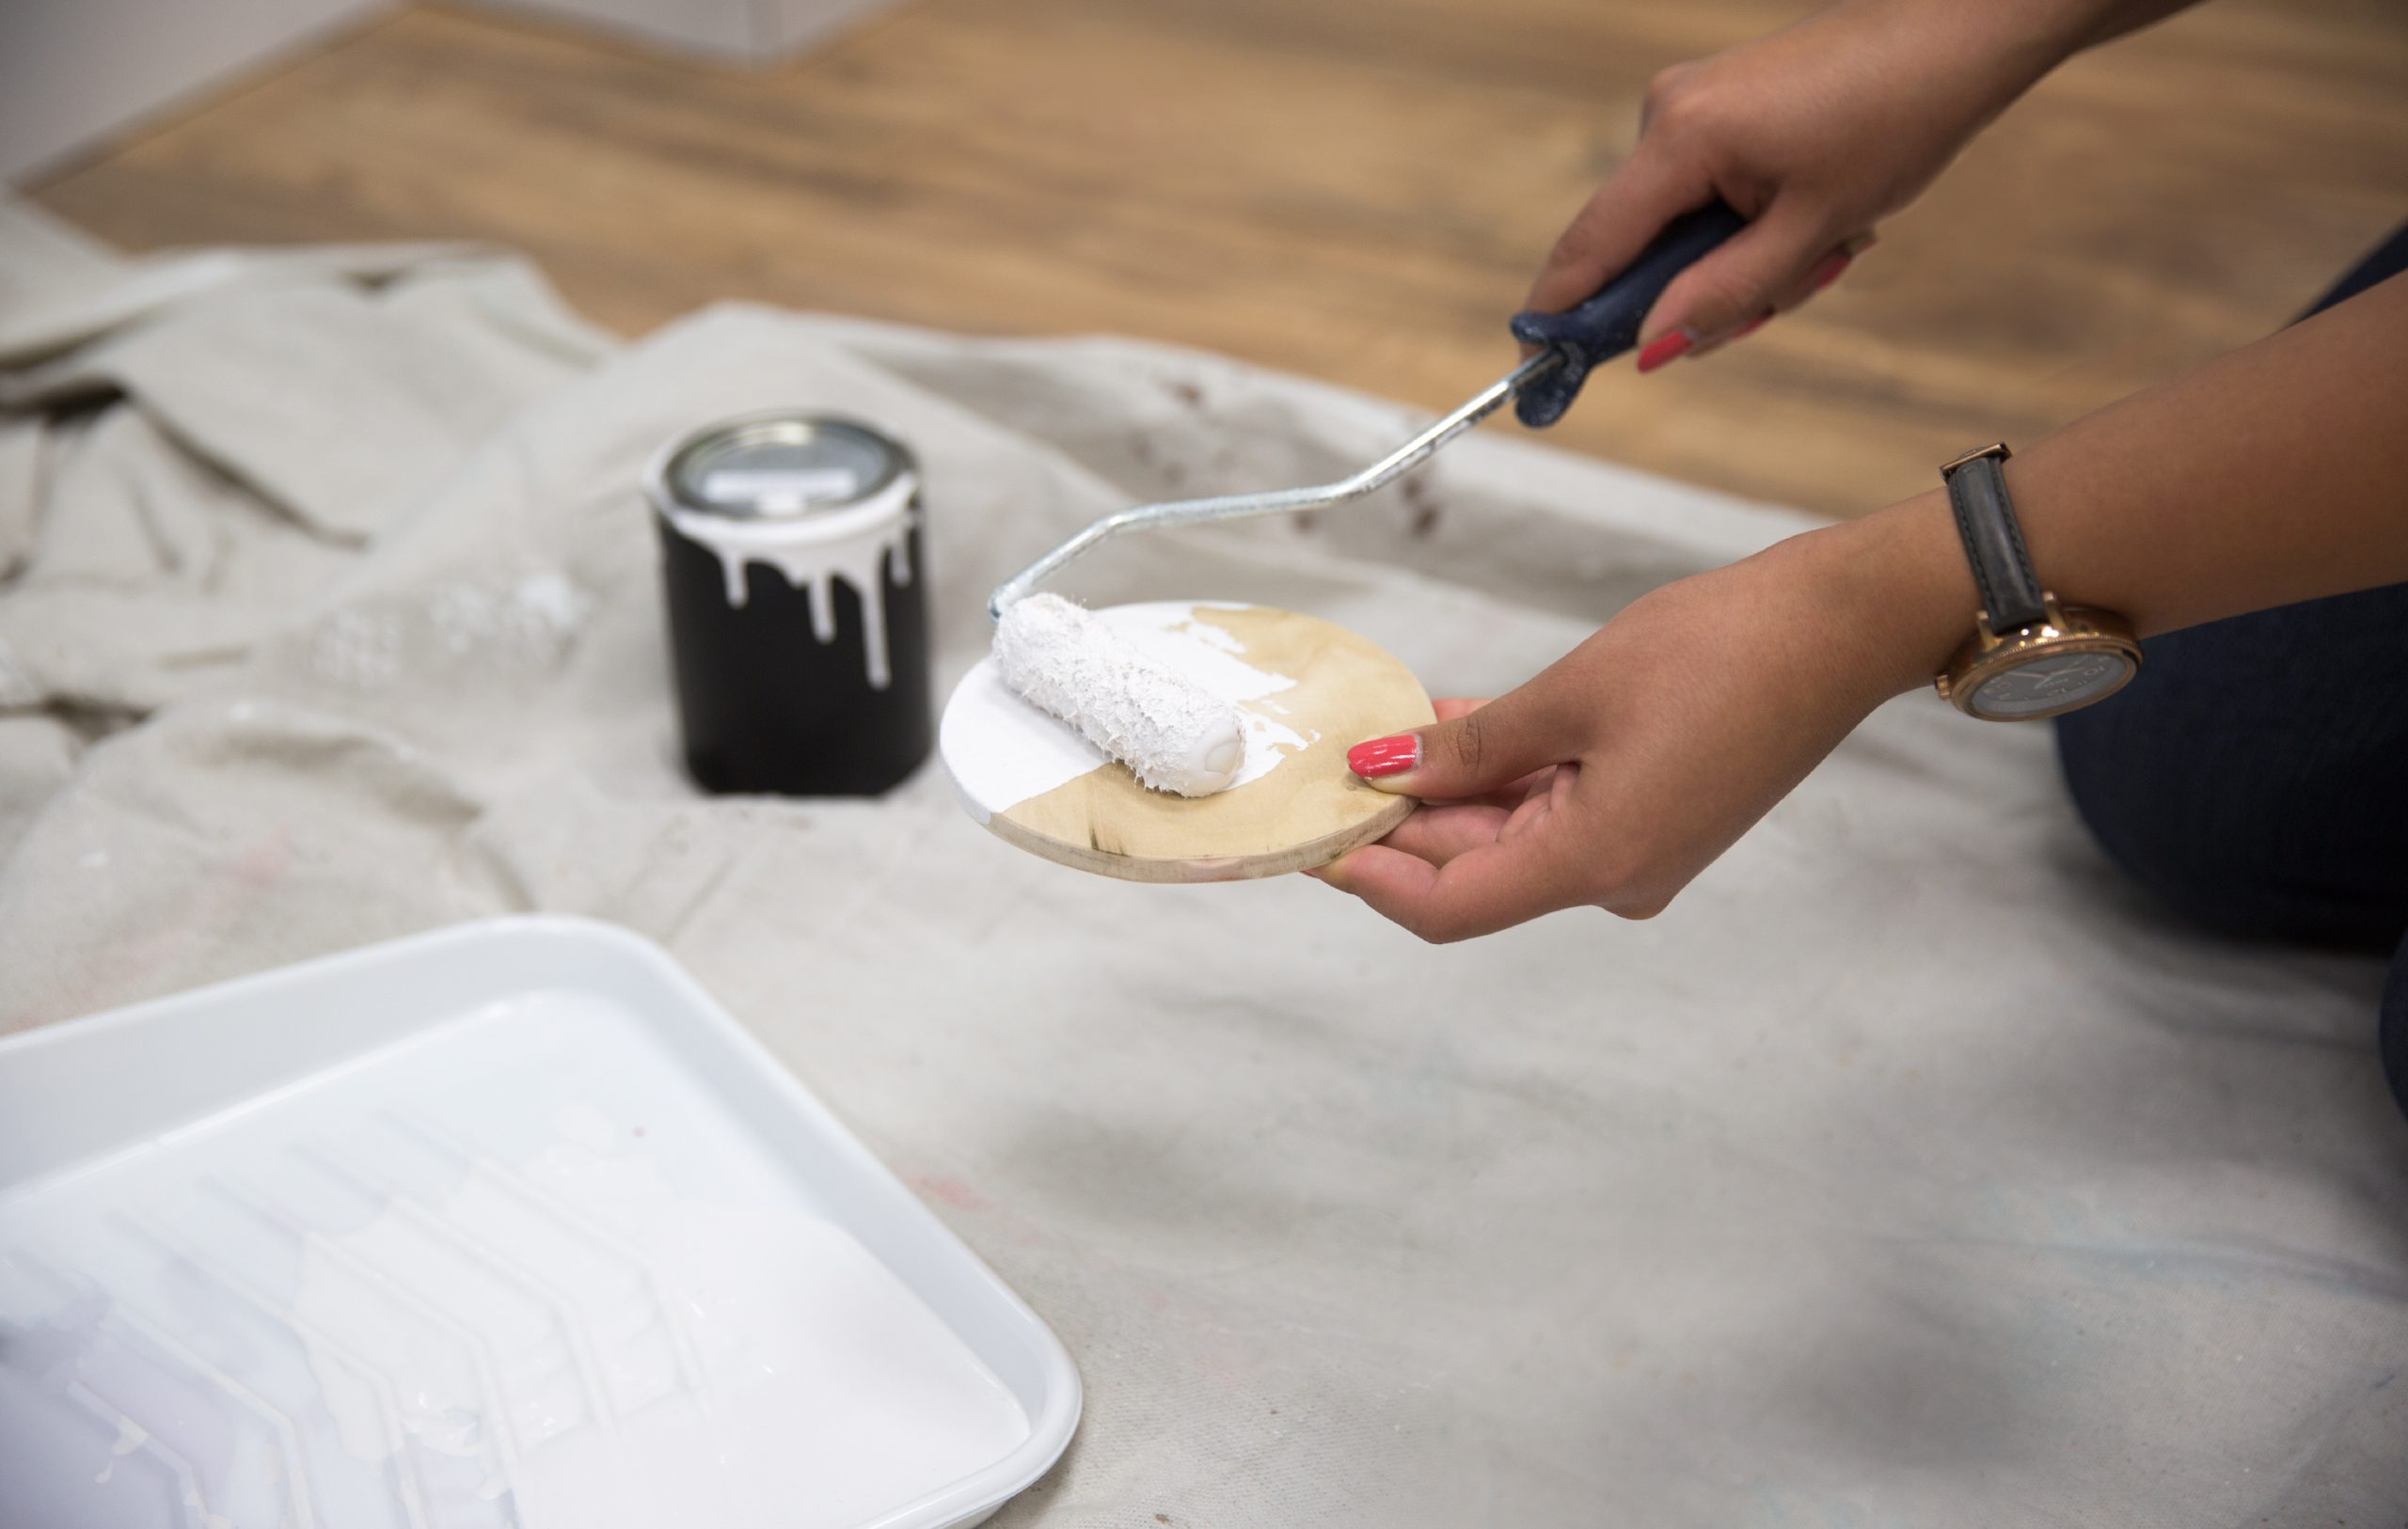 Painting the wood circle in white paint.